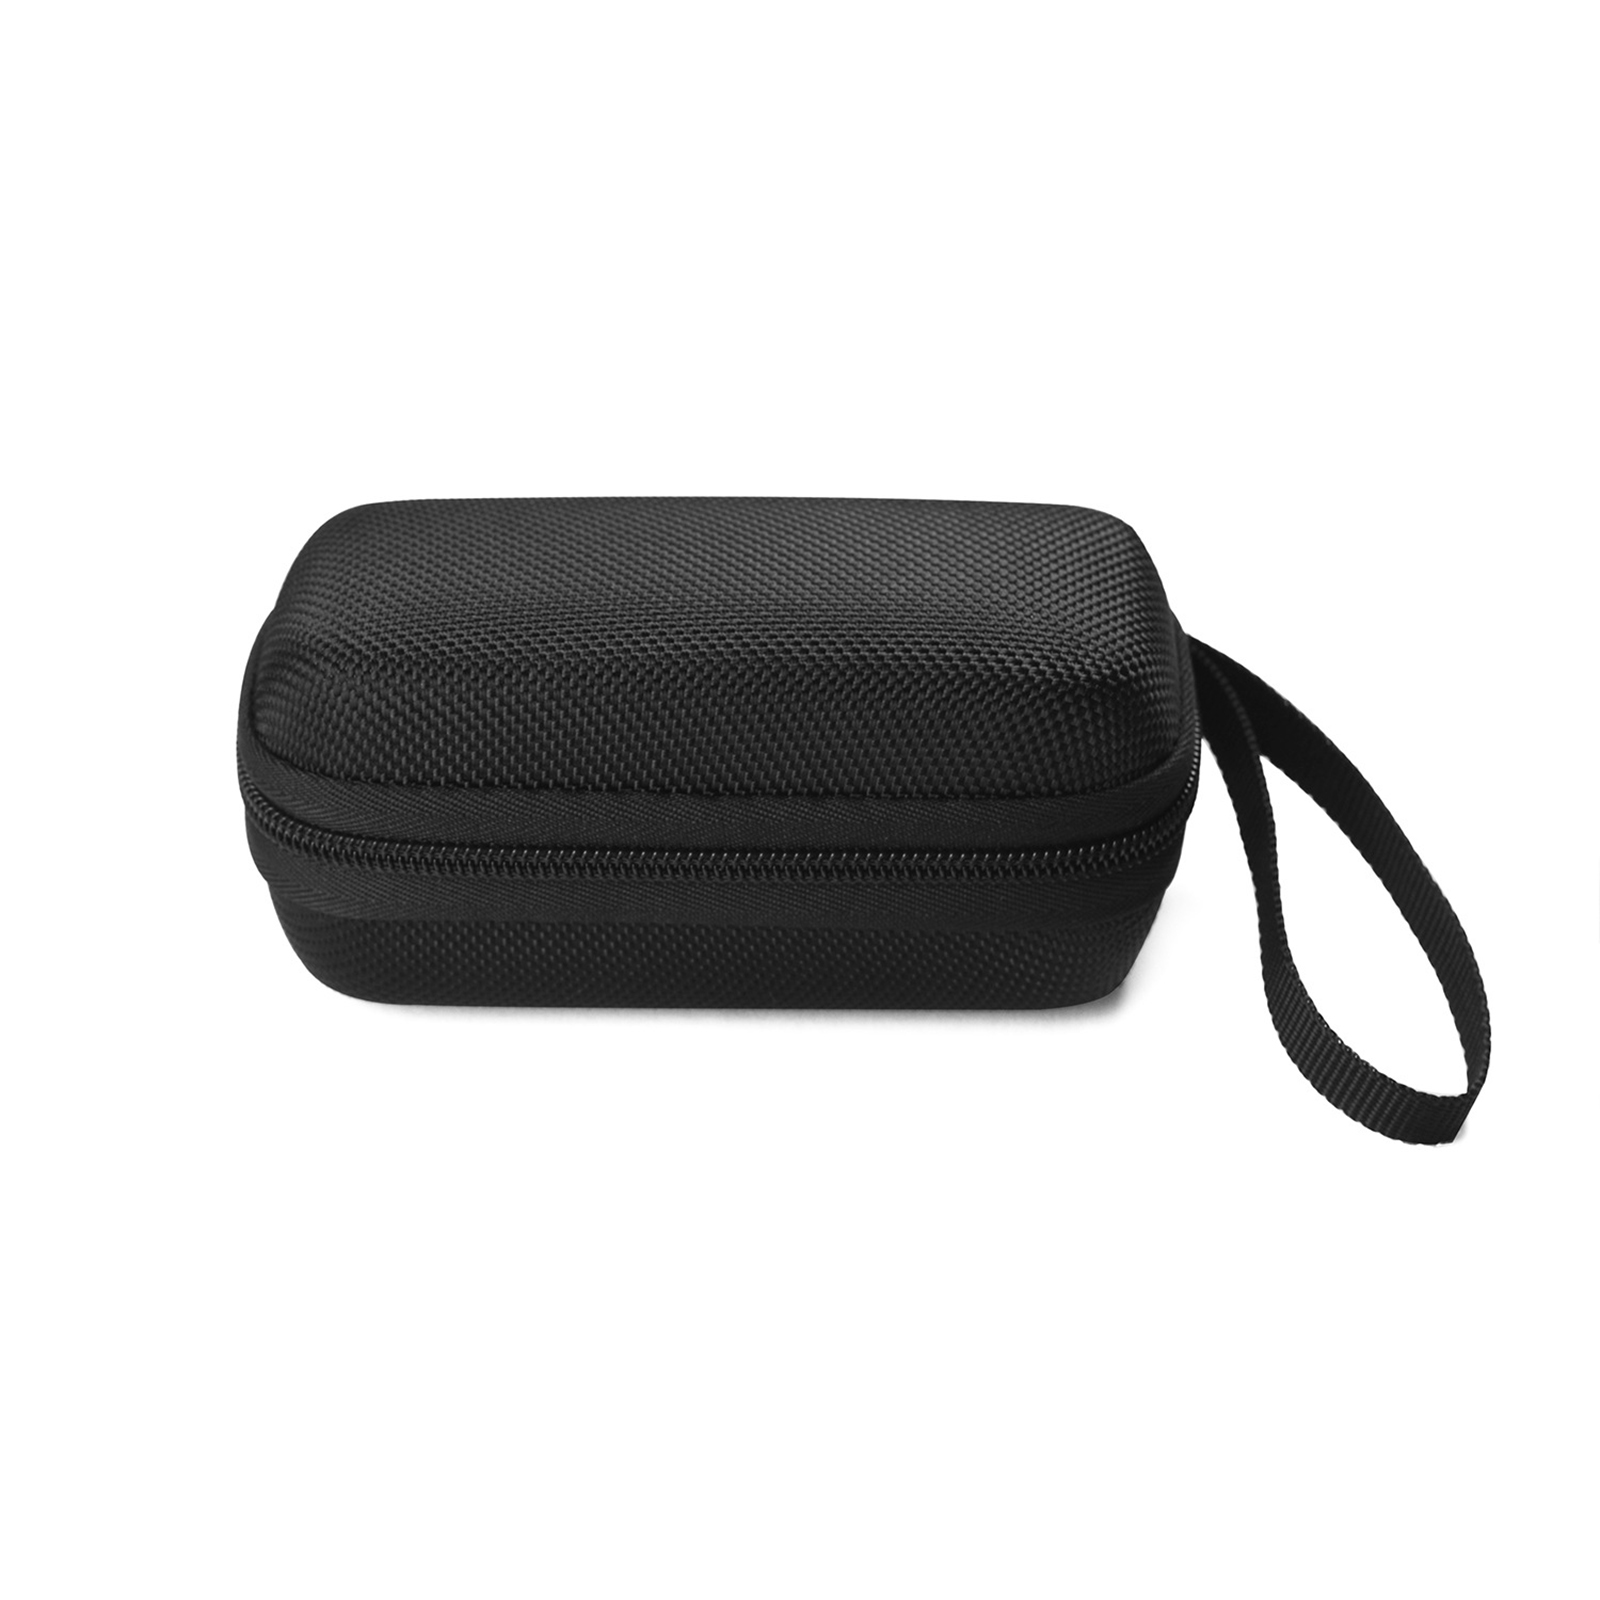 Black Nylon Protective Box Bag Storage Carrying Case For Airpods